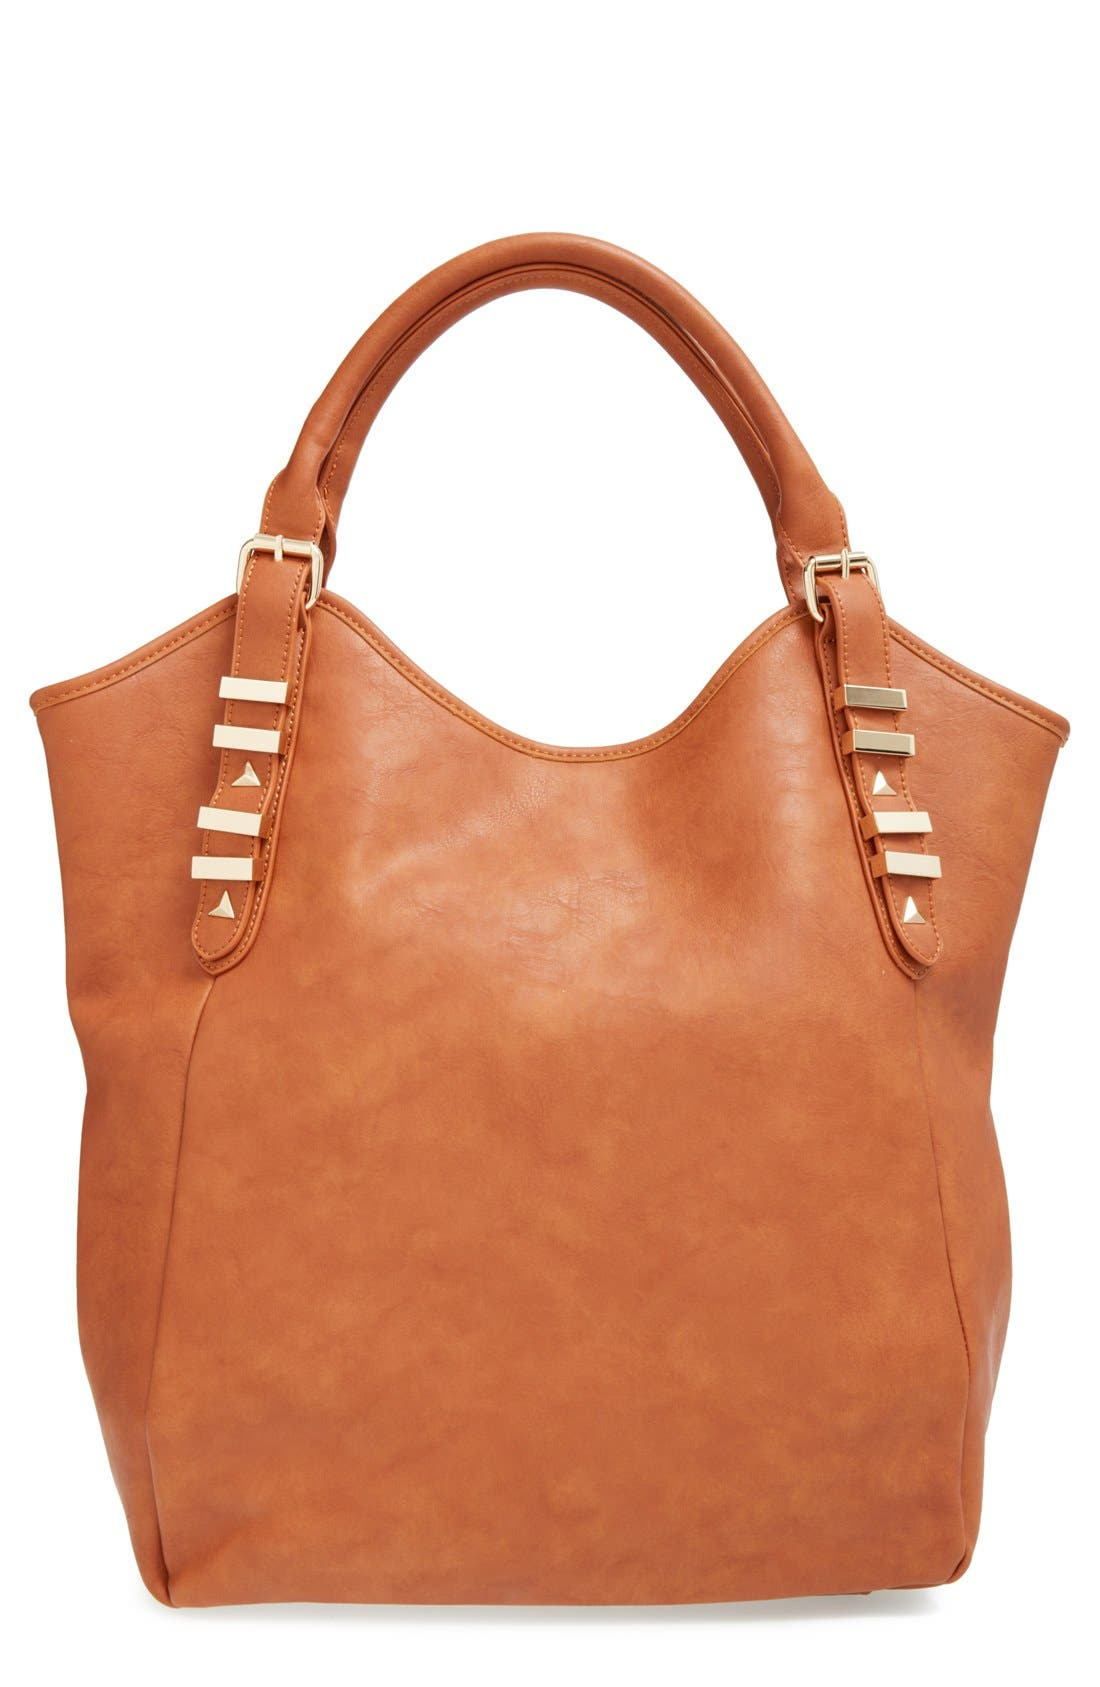 Alternate Image 1 Selected - Emperia Faux Leather Tote